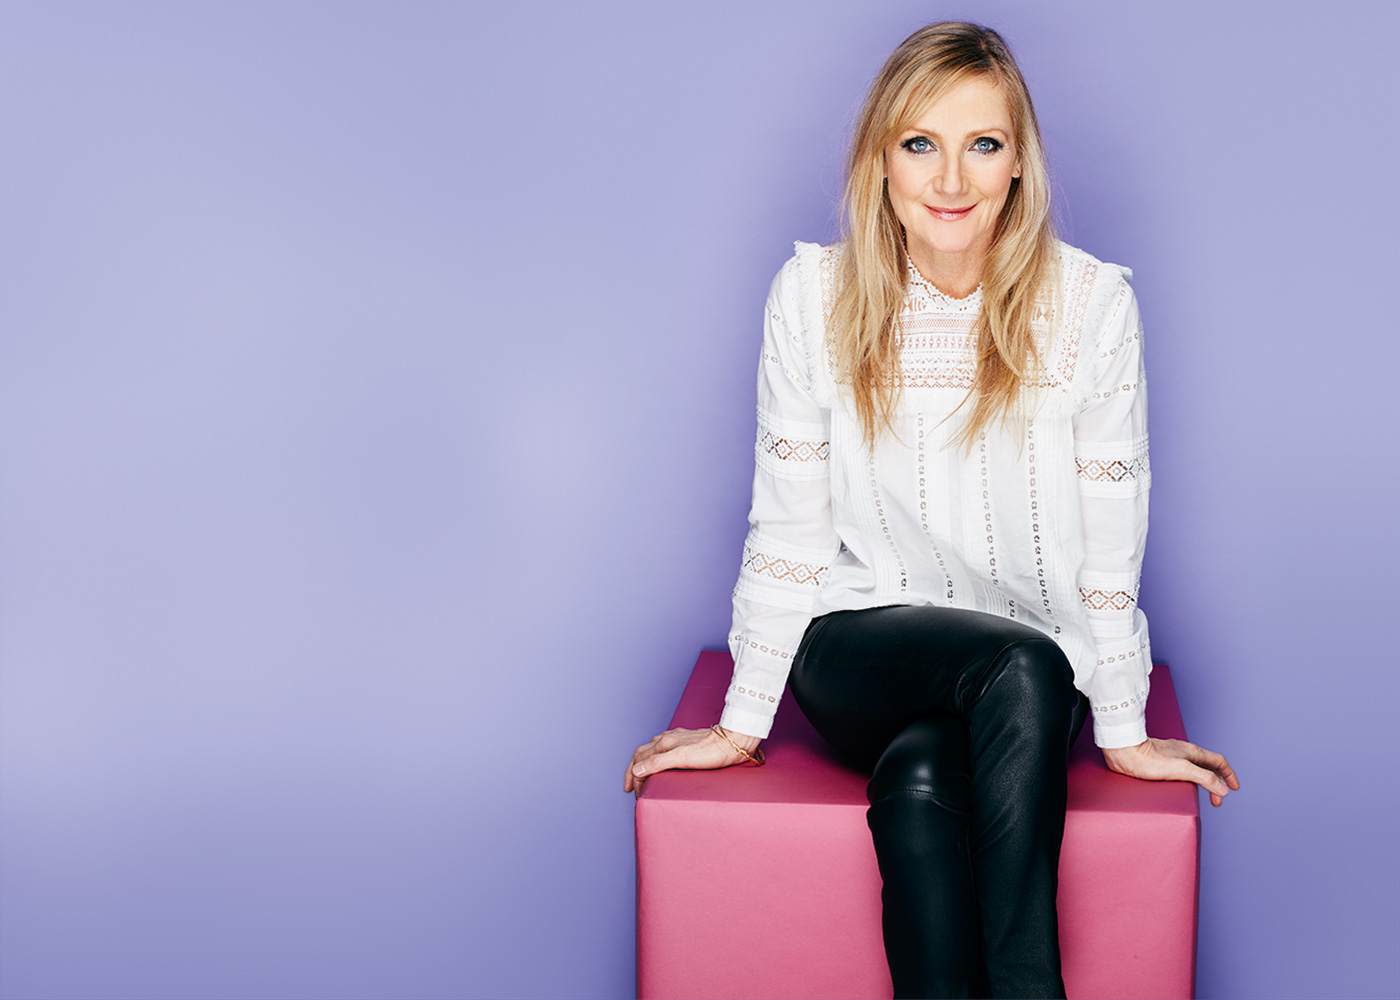 Scott Amp Bailey Actress Lesley Sharp Talks Female